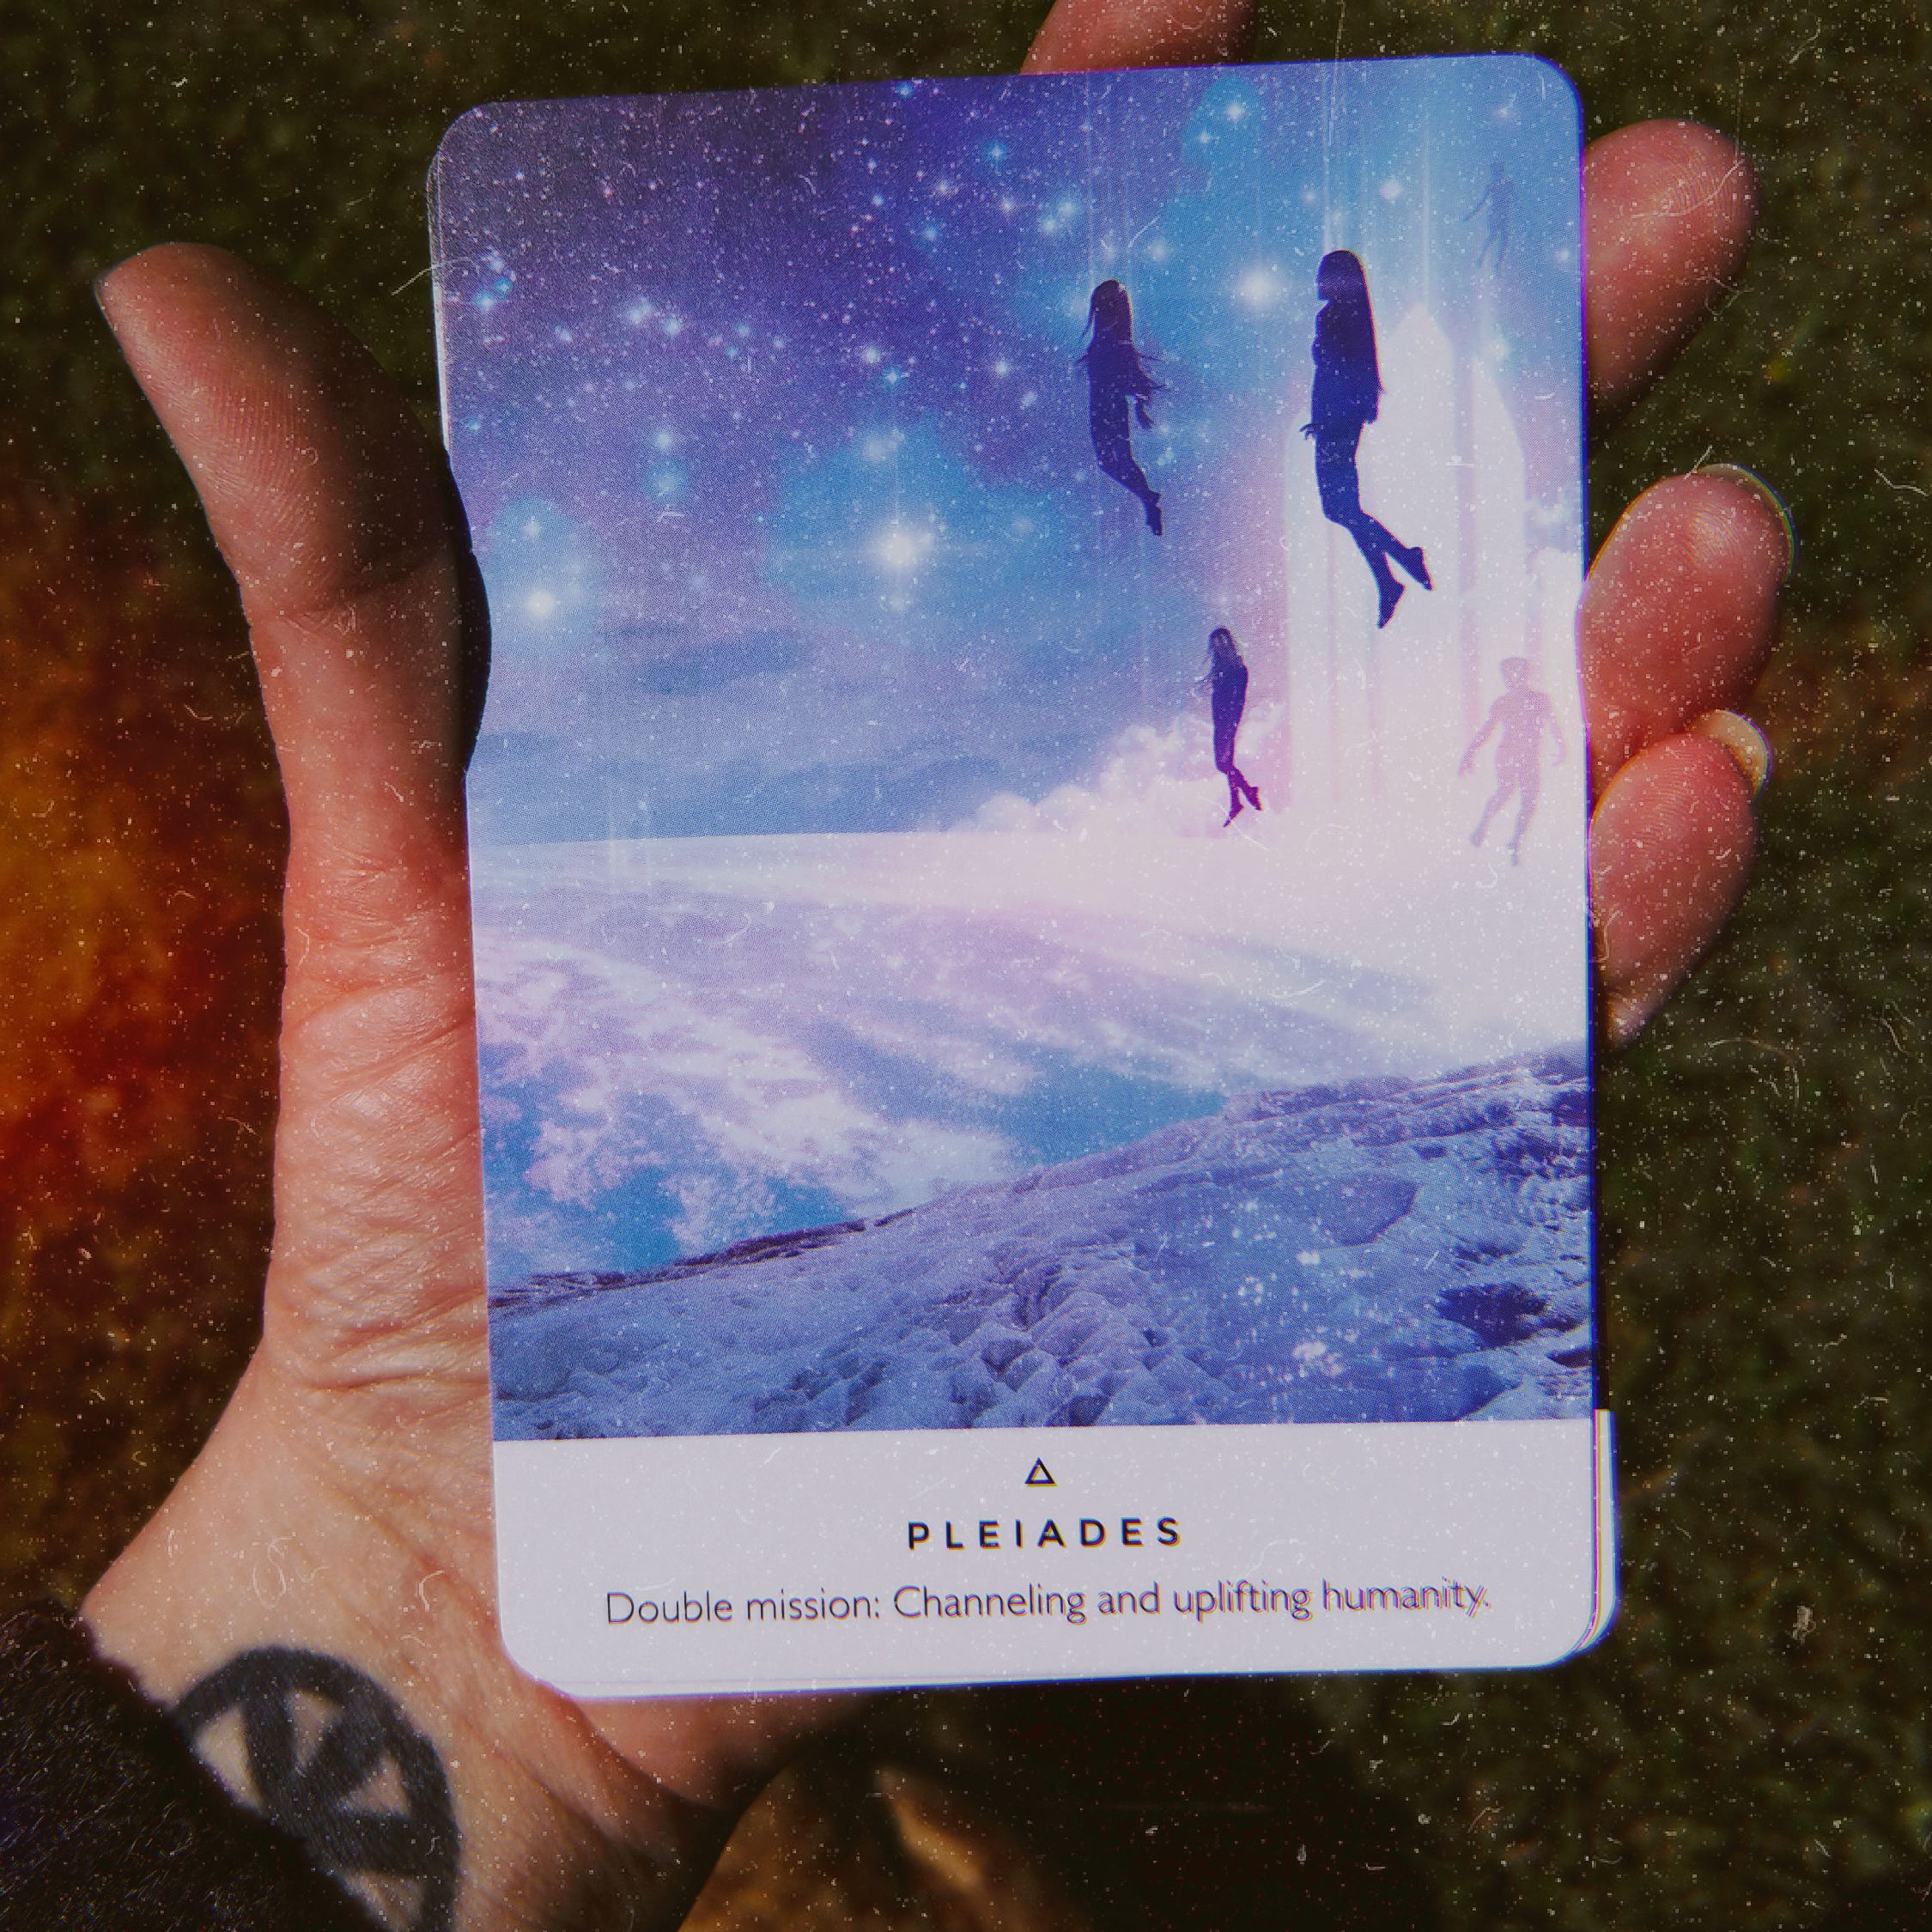 April 25, 2019 Oracle Message Your Spirit Sparkle